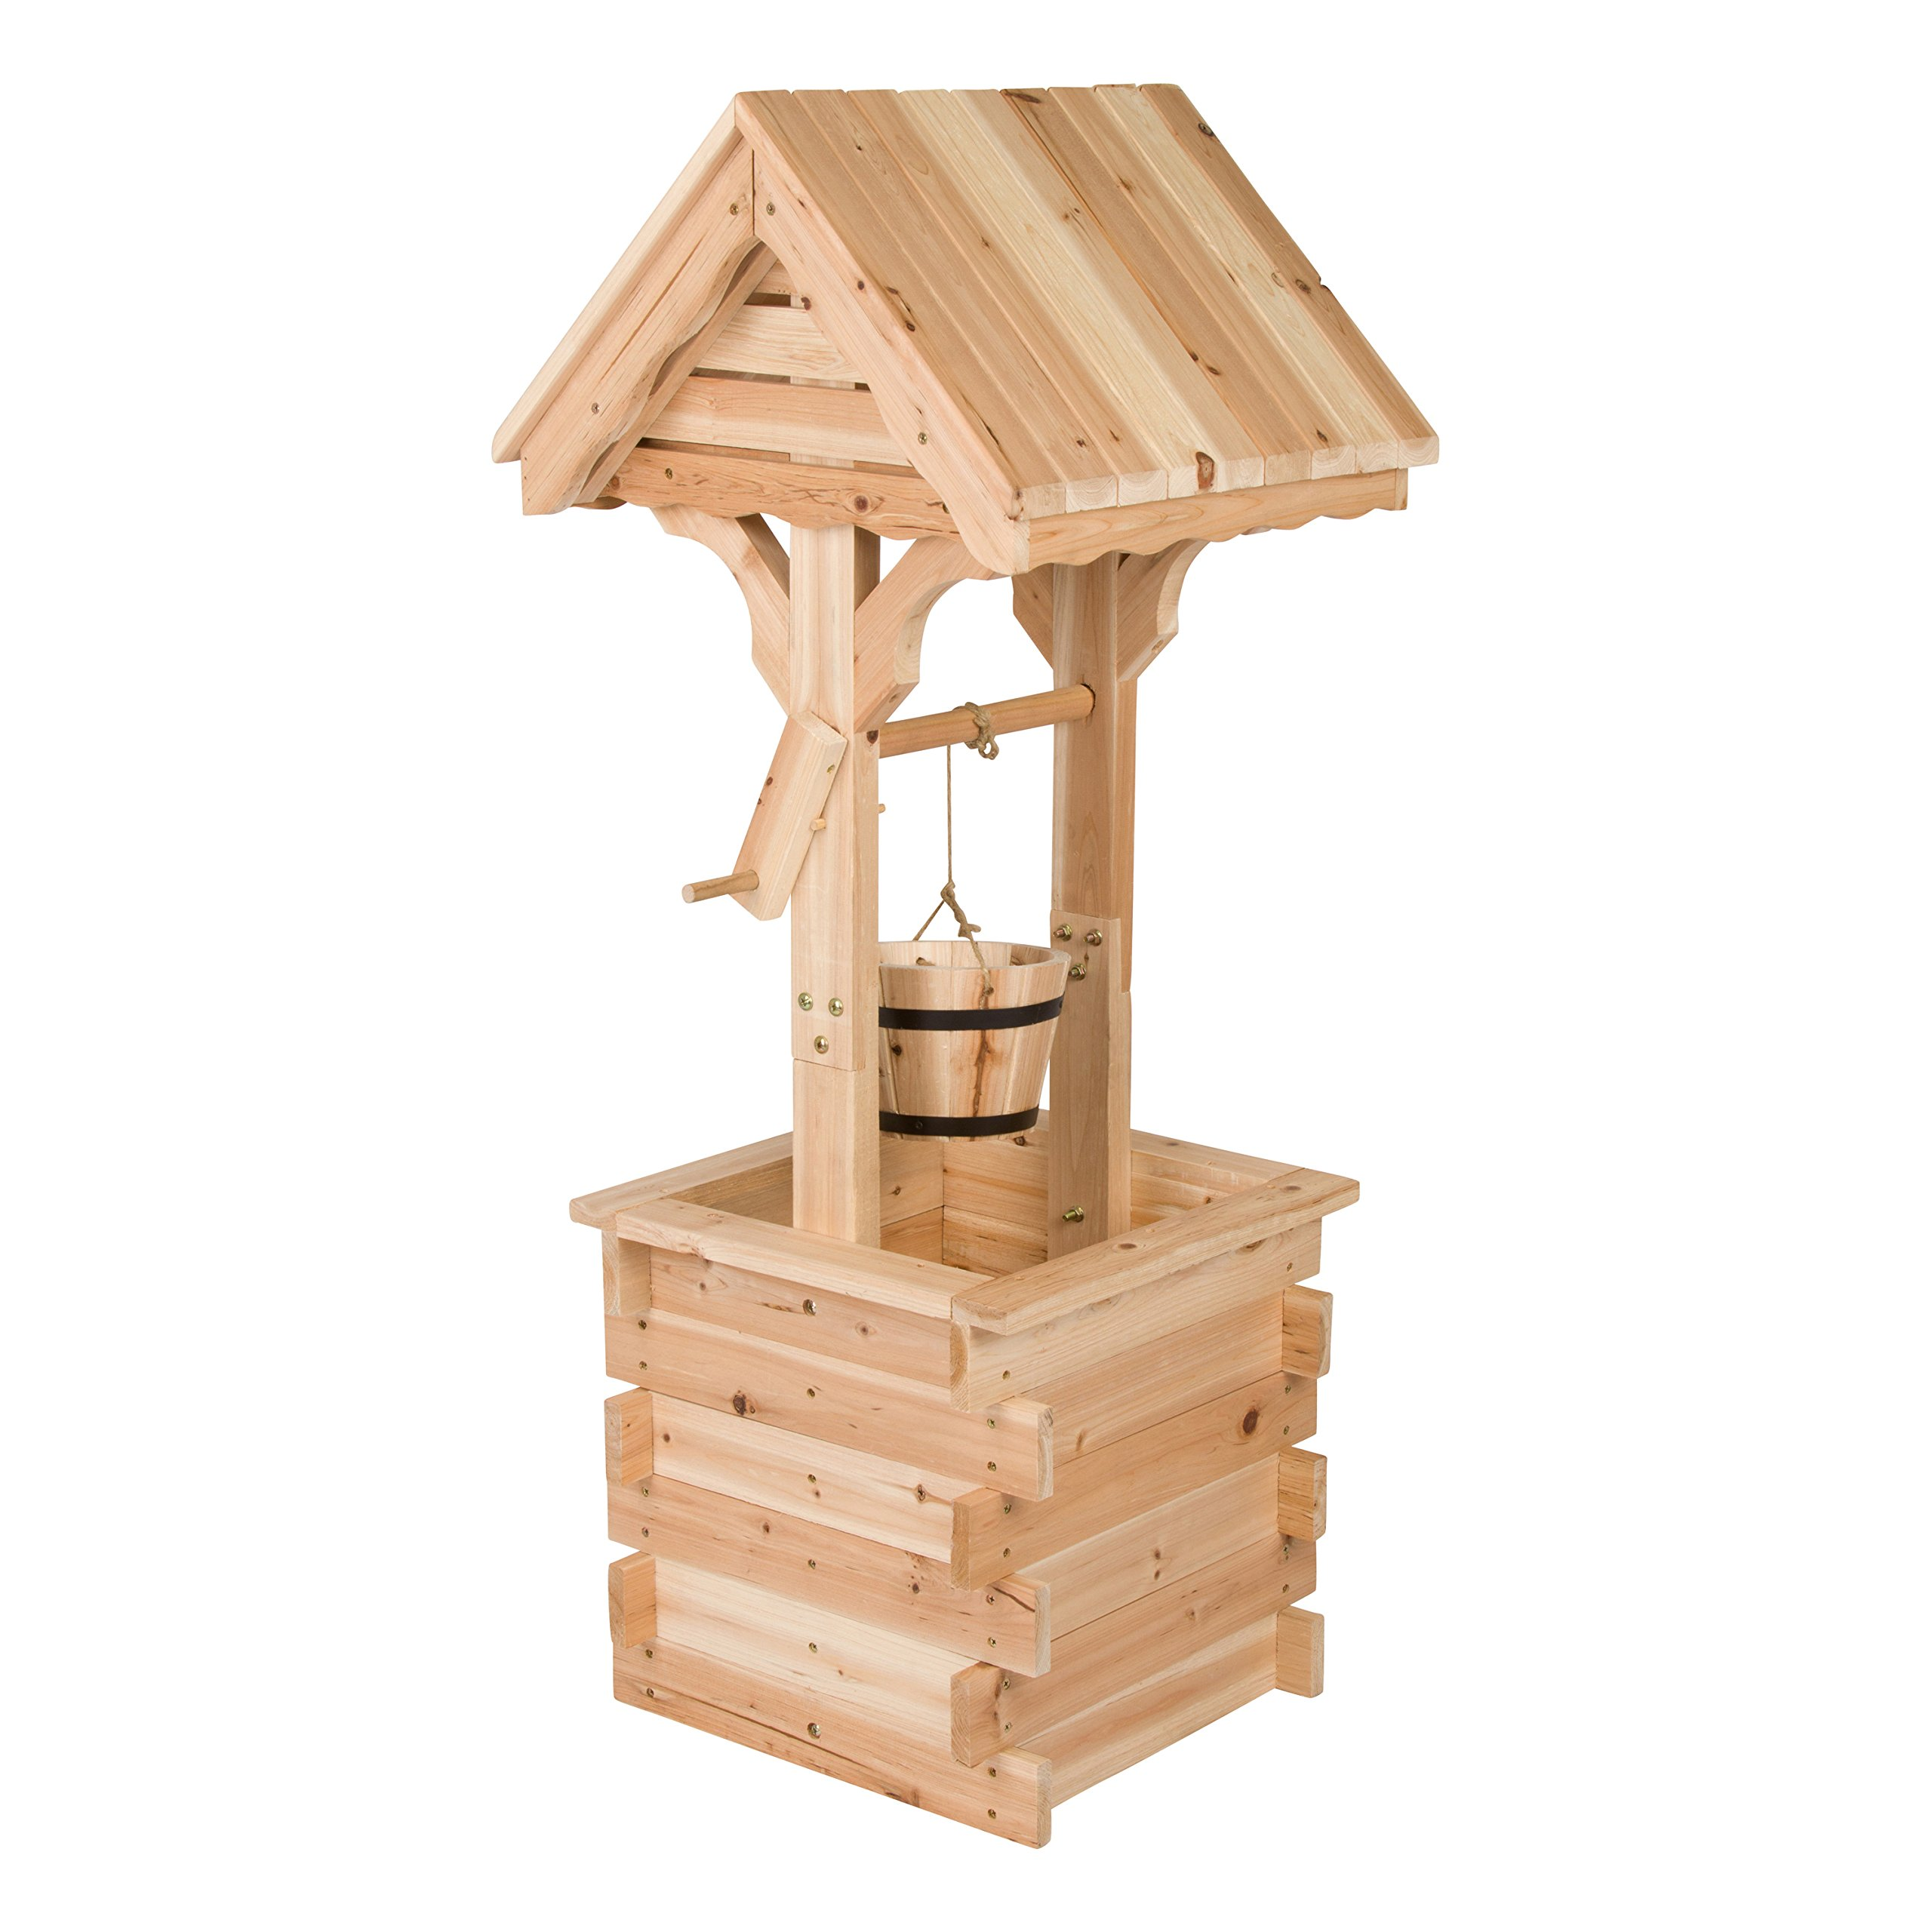 Shine Company Decorative Wishing Well, Natural by Shine Company Inc.